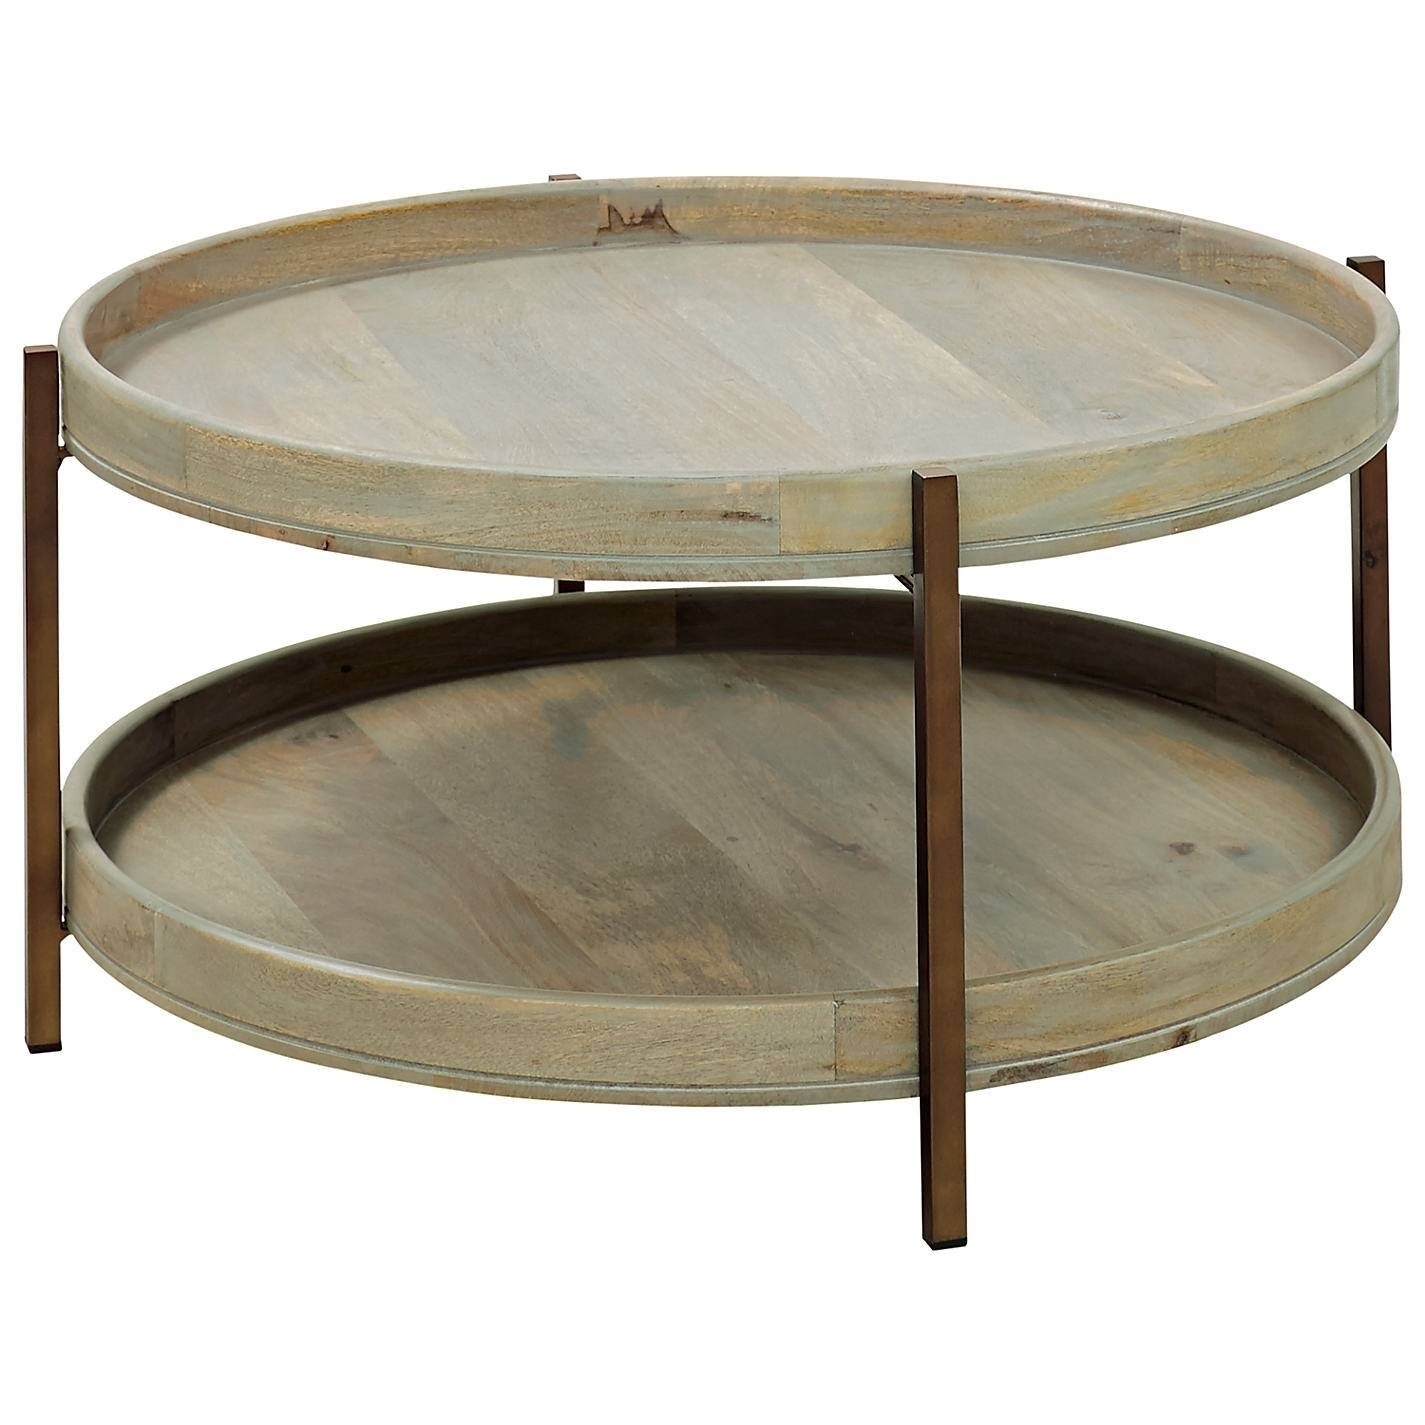 Lovely Round Trays For Coffee Tables With Coffee Table Nice in Round Coffee Table Trays (Image 16 of 30)